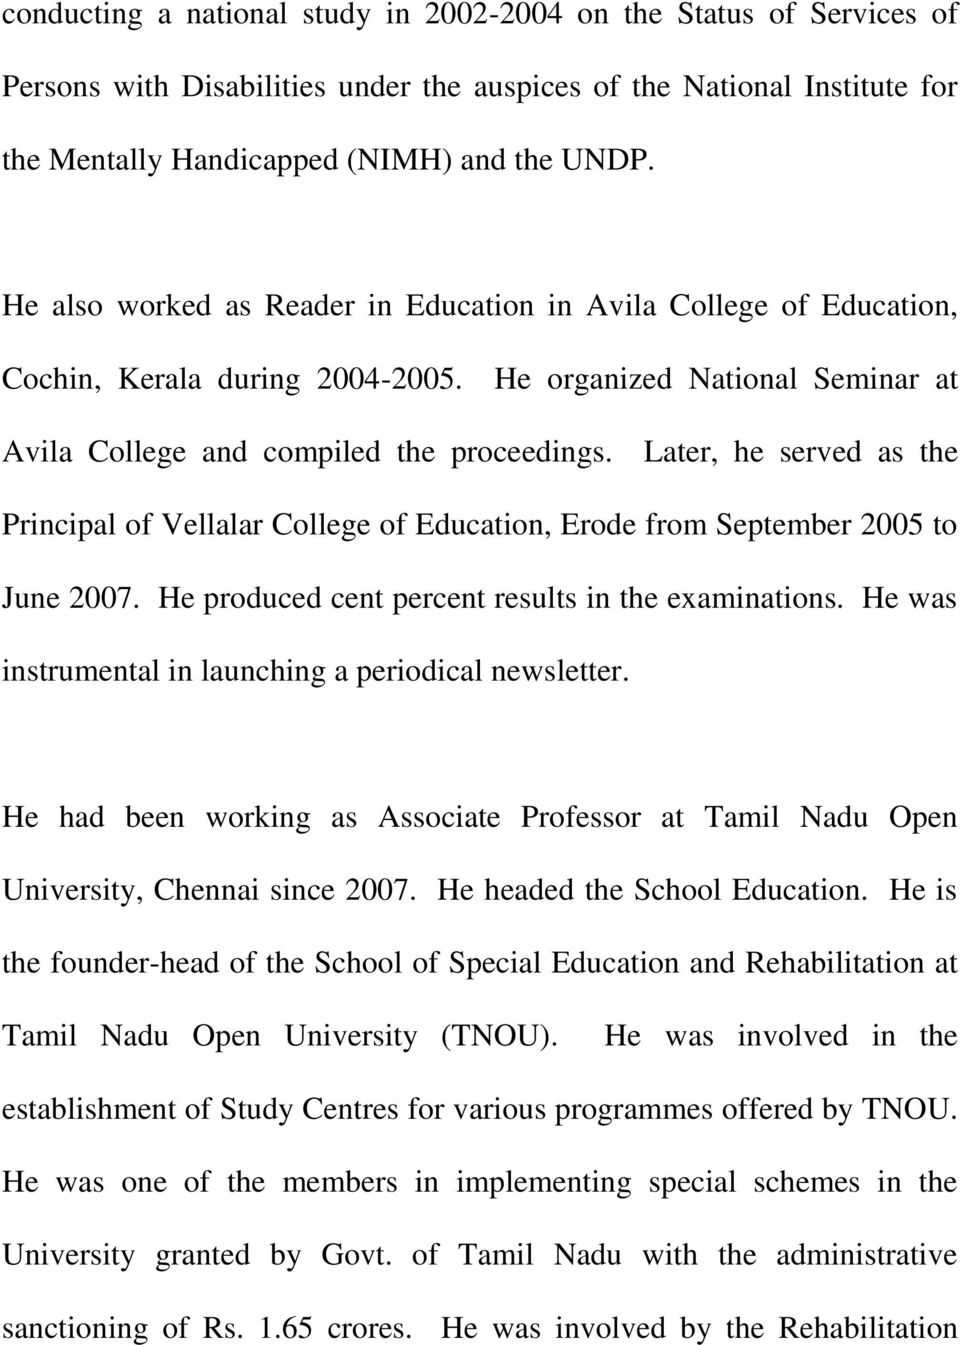 Later, he served as the Principal of Vellalar College of Education, Erode from September 2005 to June 2007. He produced cent percent results in the examinations.